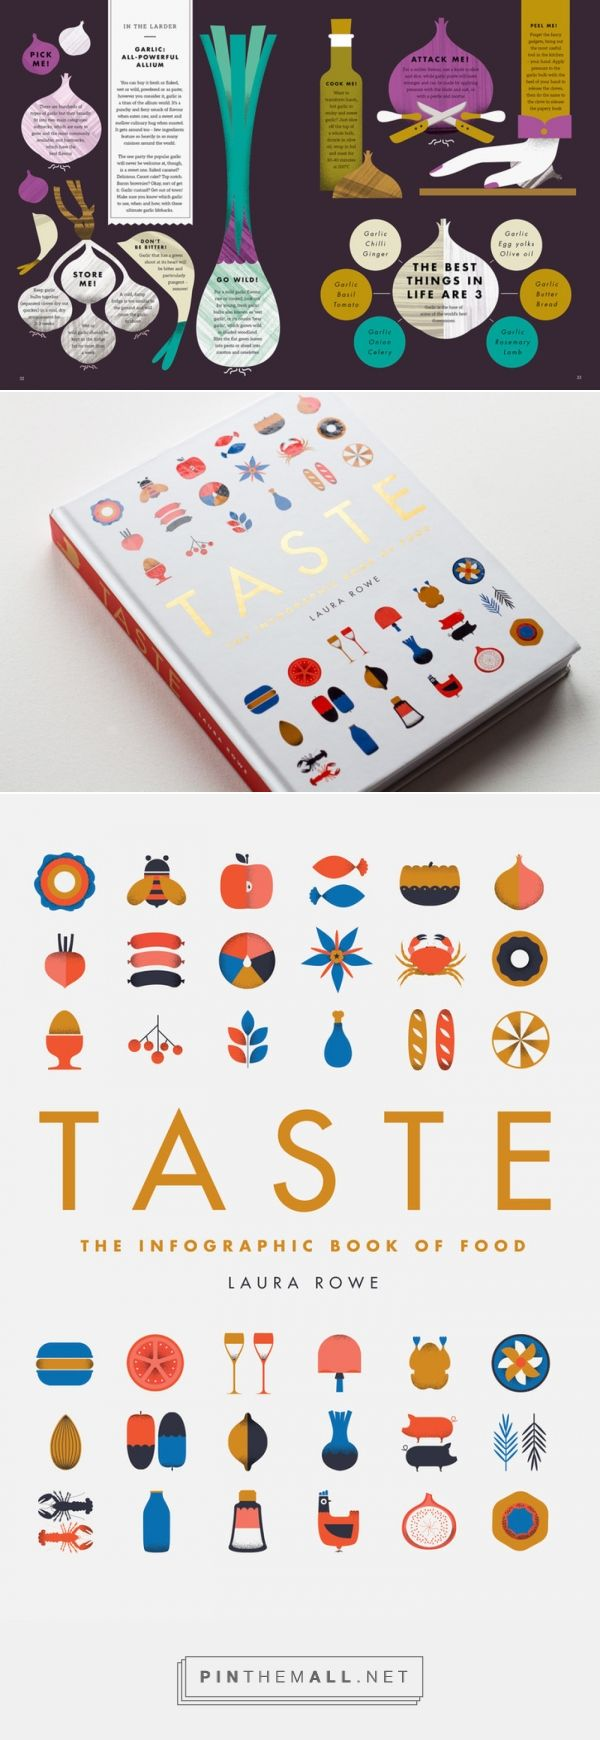 TASTE. THE INFOGRAPHIC BOOK OF FOOD. Illustrations by Vicki Turner.